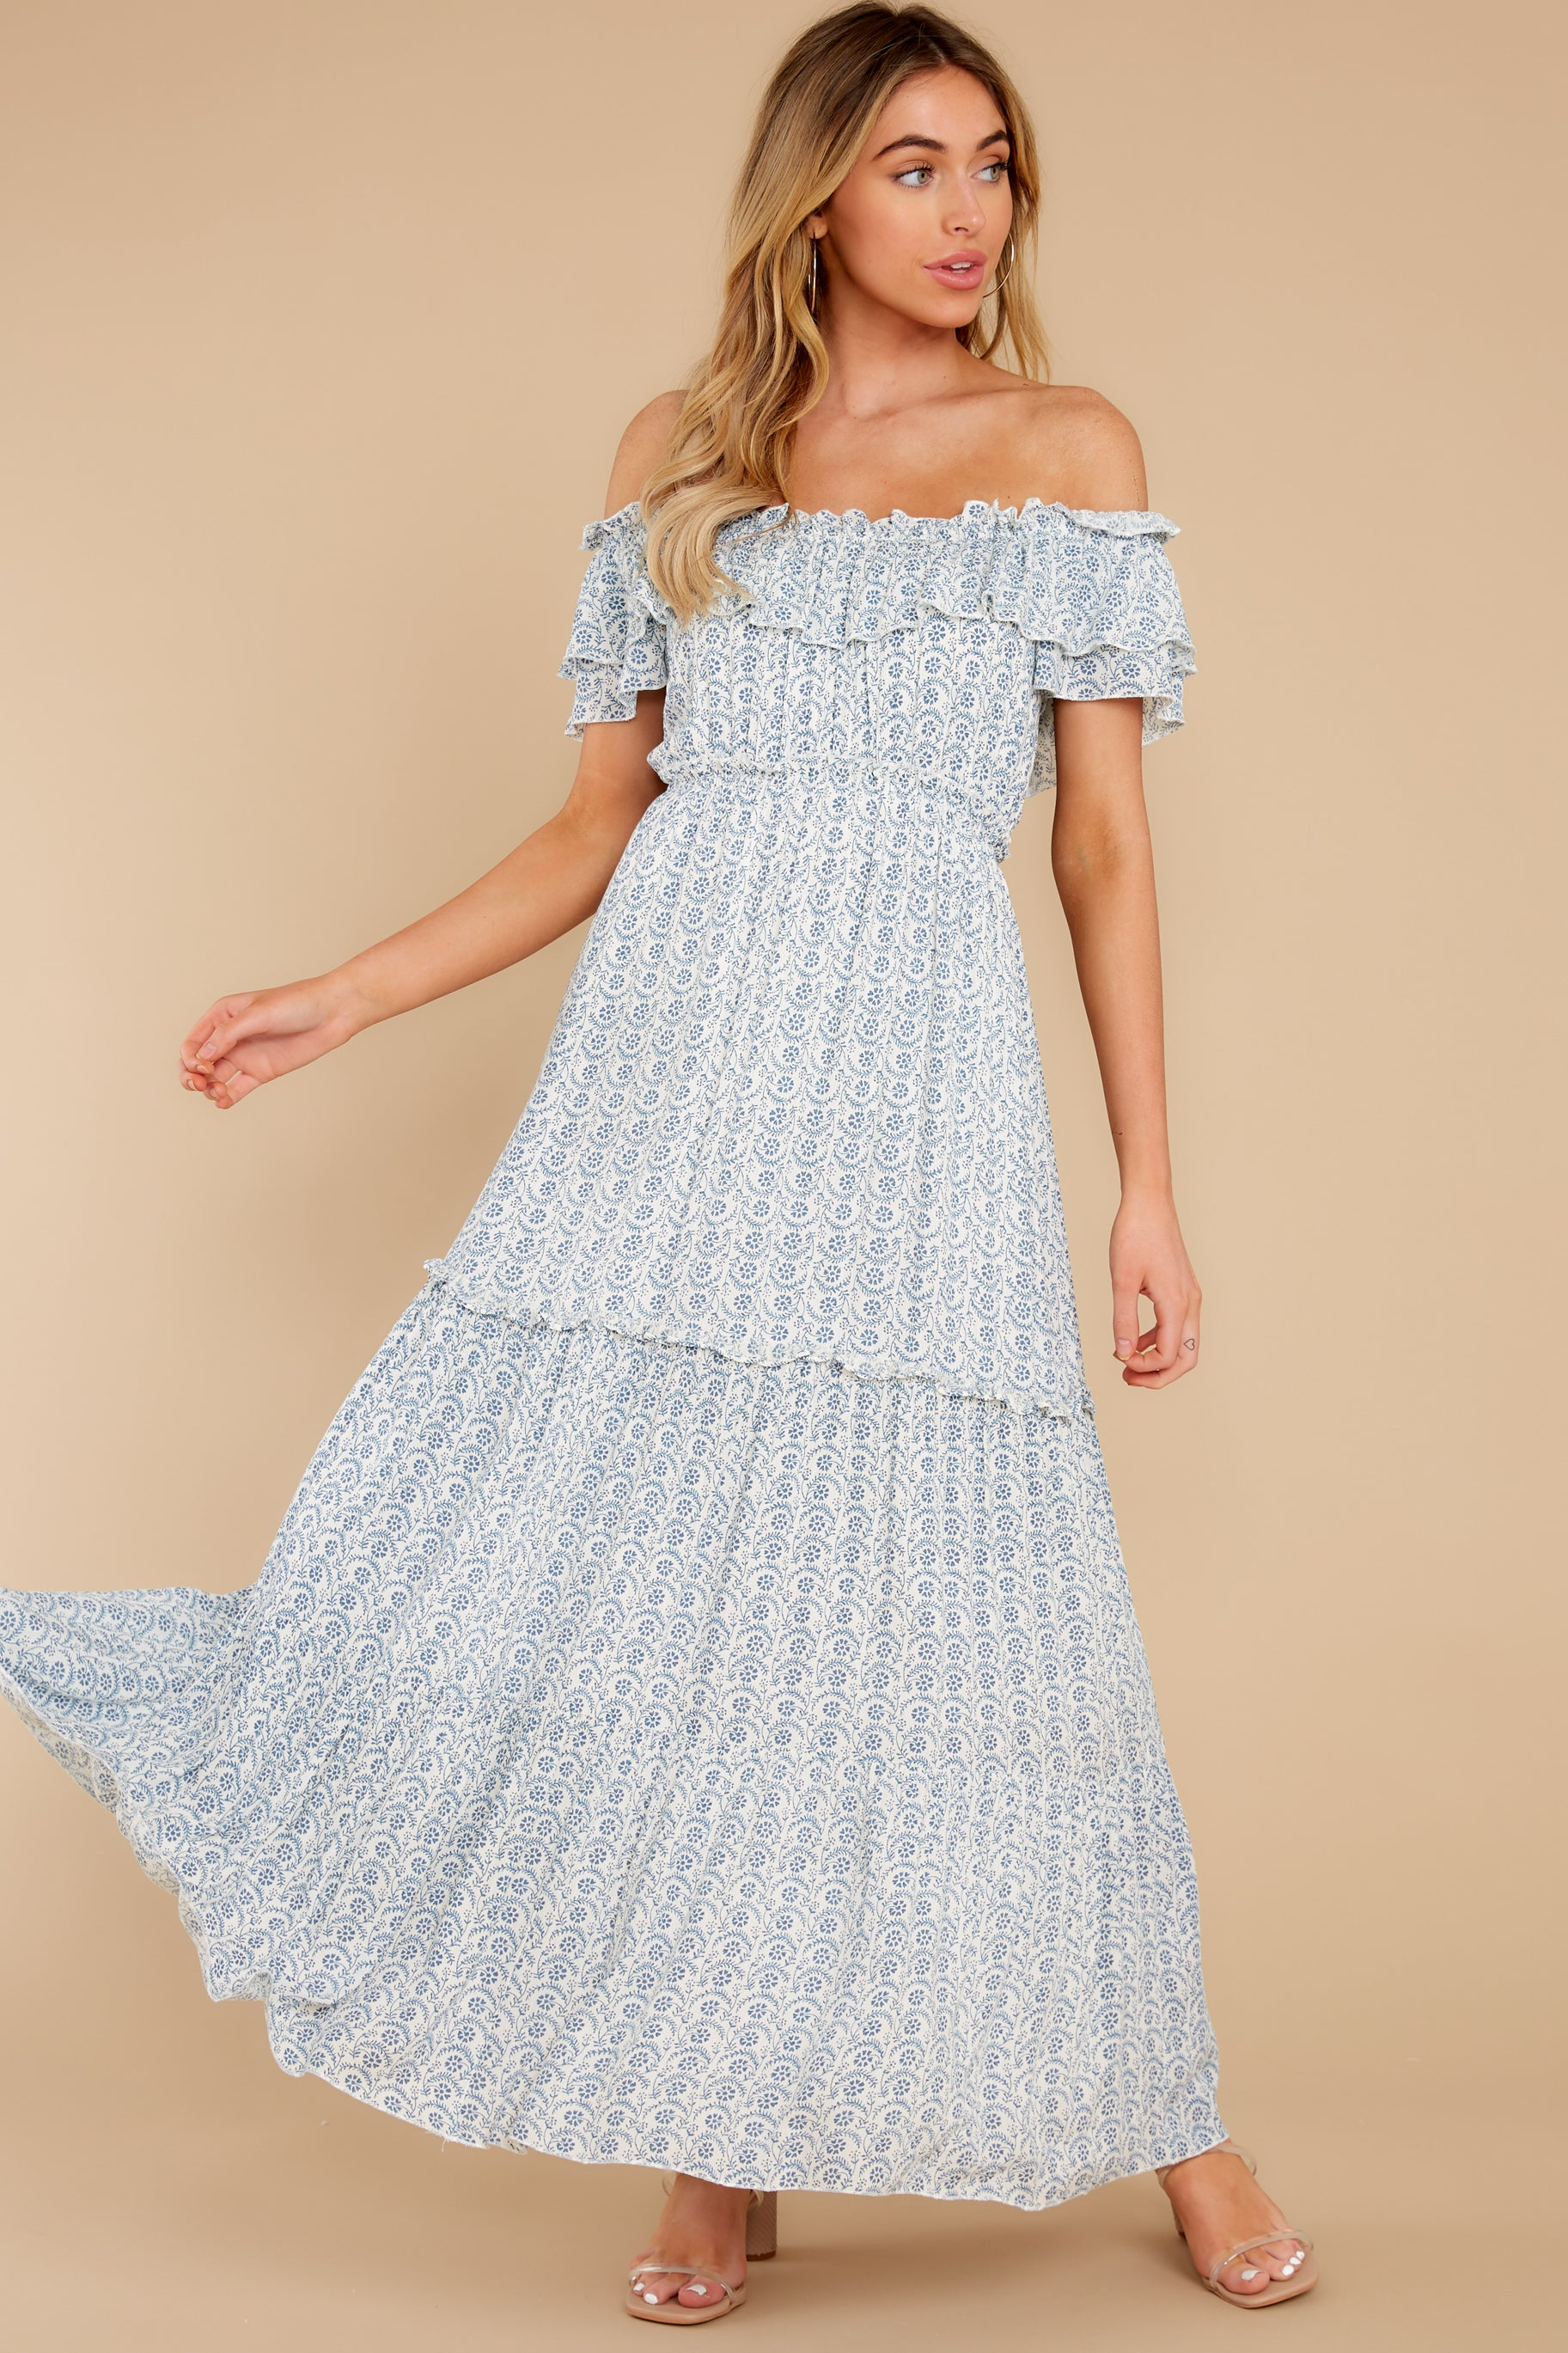 1980s Clothing, Fashion | 80s Style Clothes Sunsets With You Light Blue Print Maxi Dress $54.00 AT vintagedancer.com